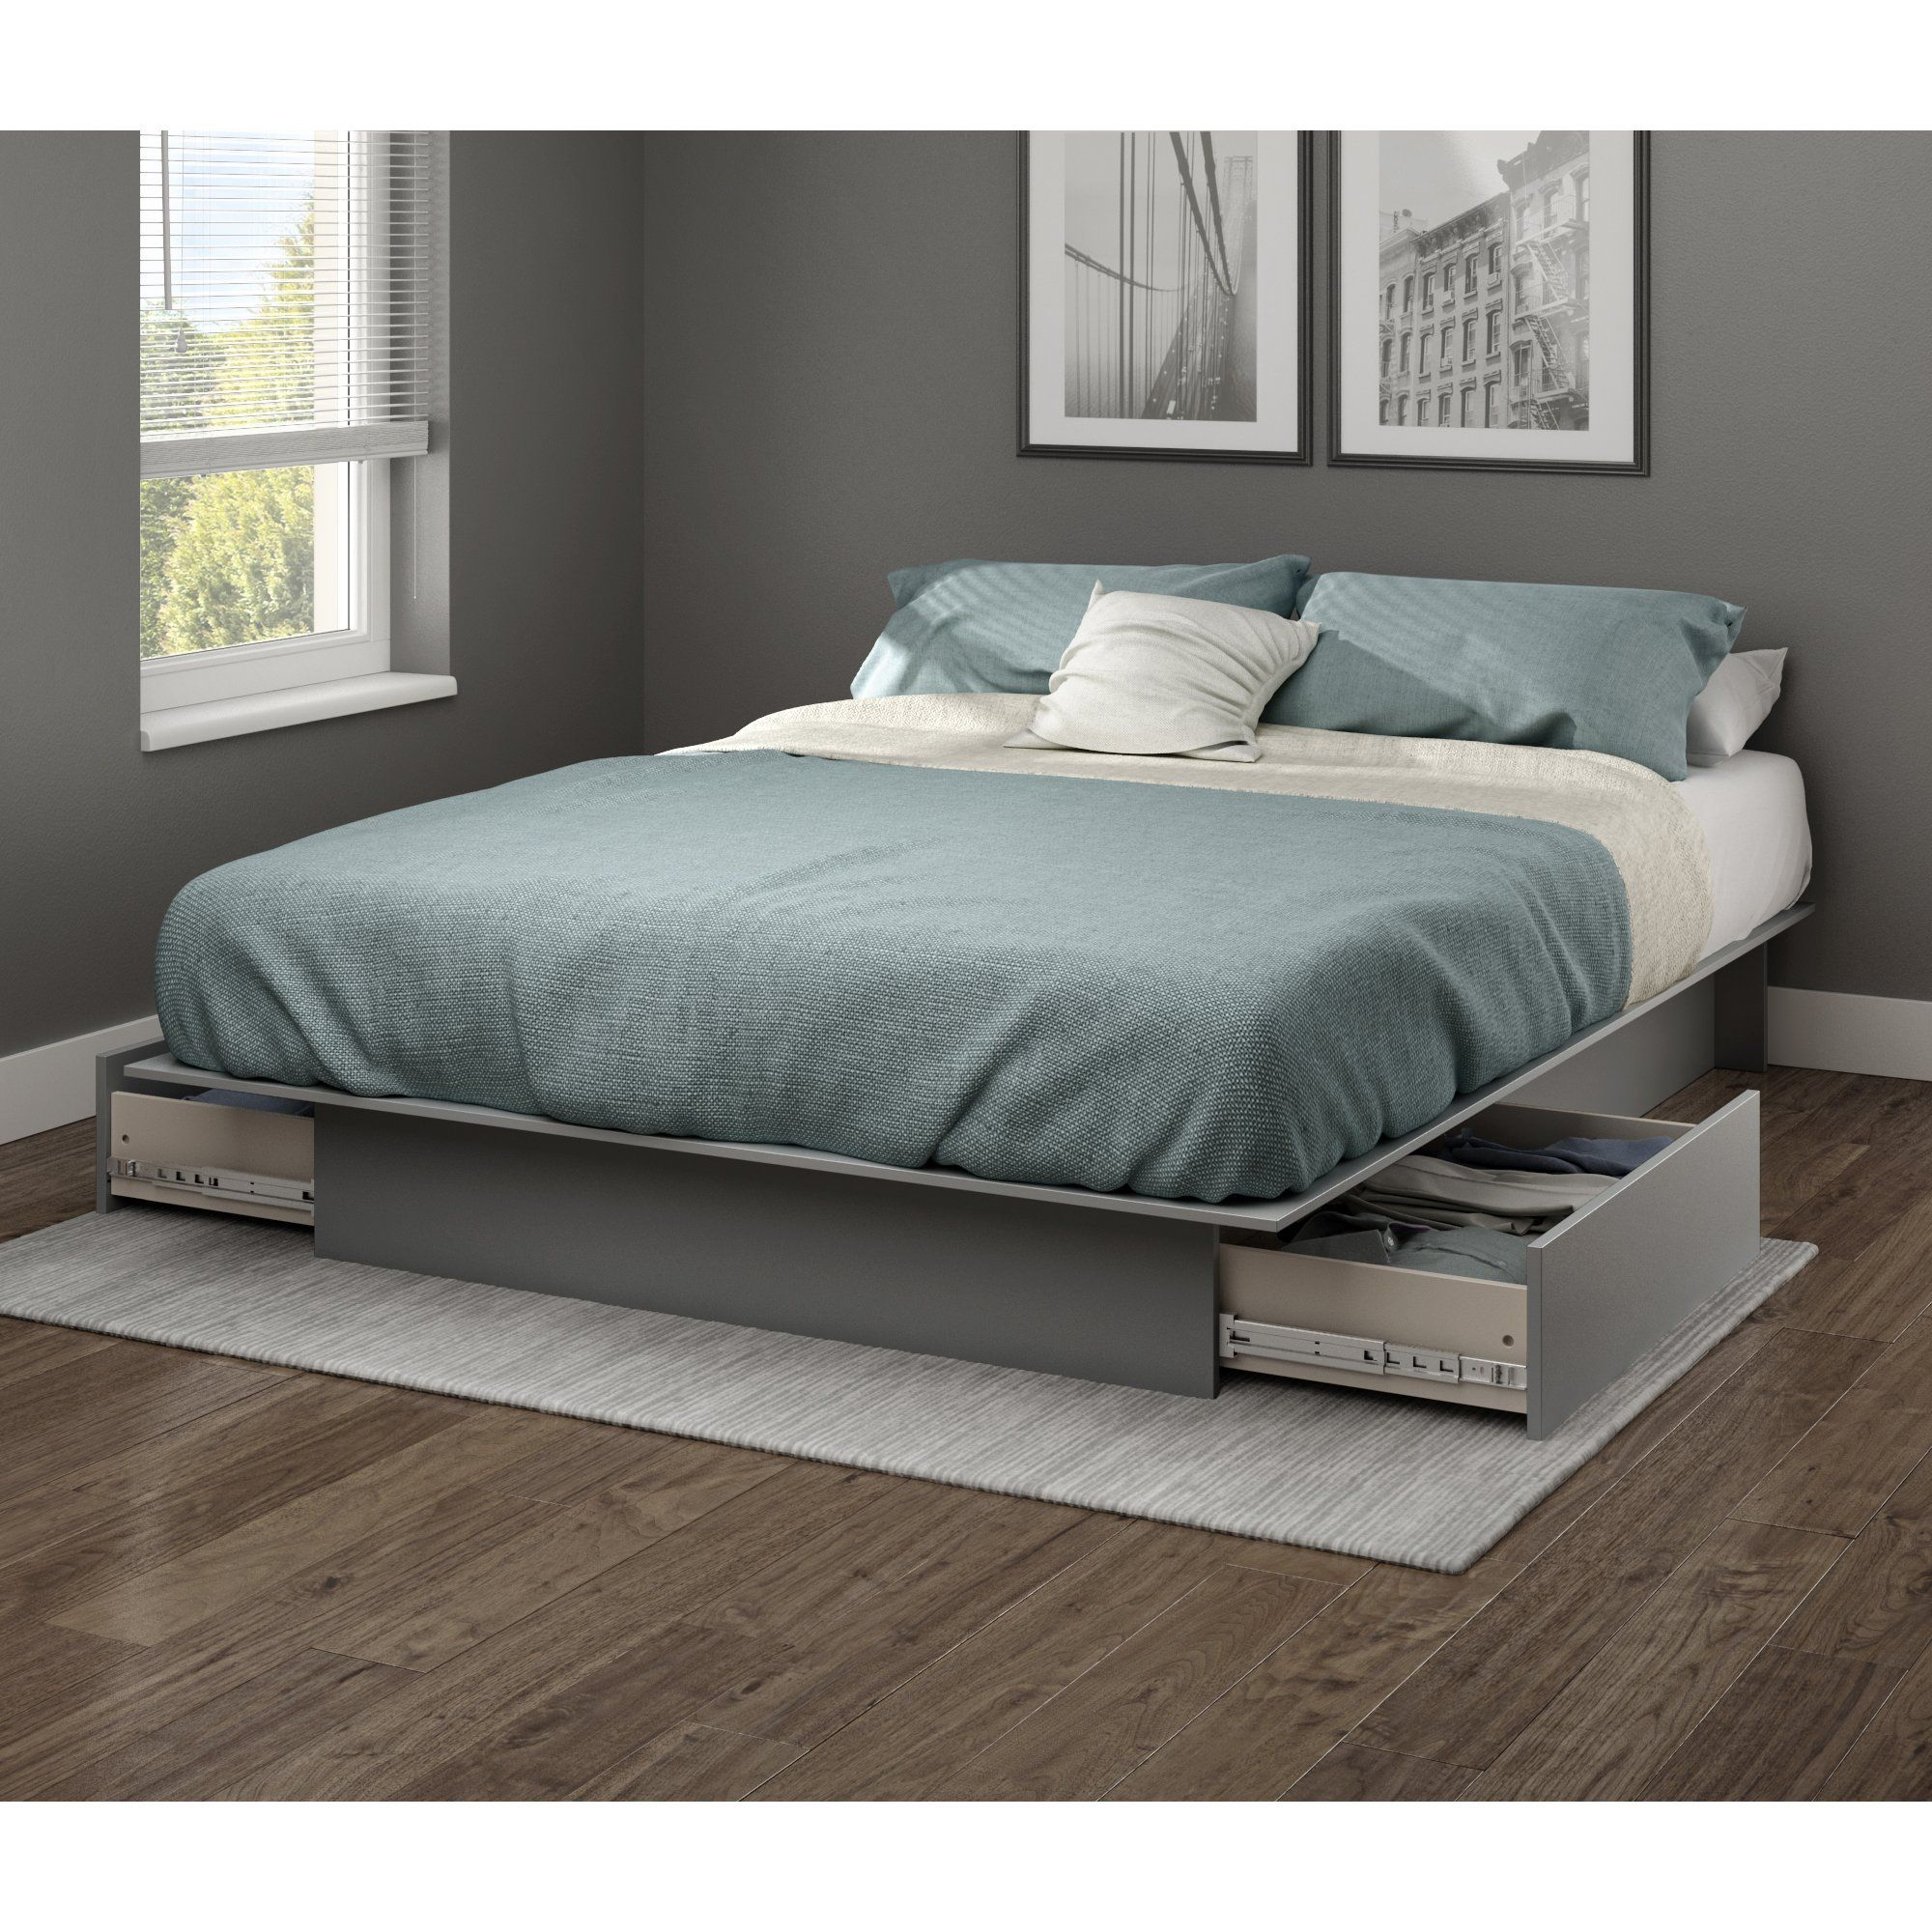 Step One Full/Queen Platform Bed with Drawers Platform